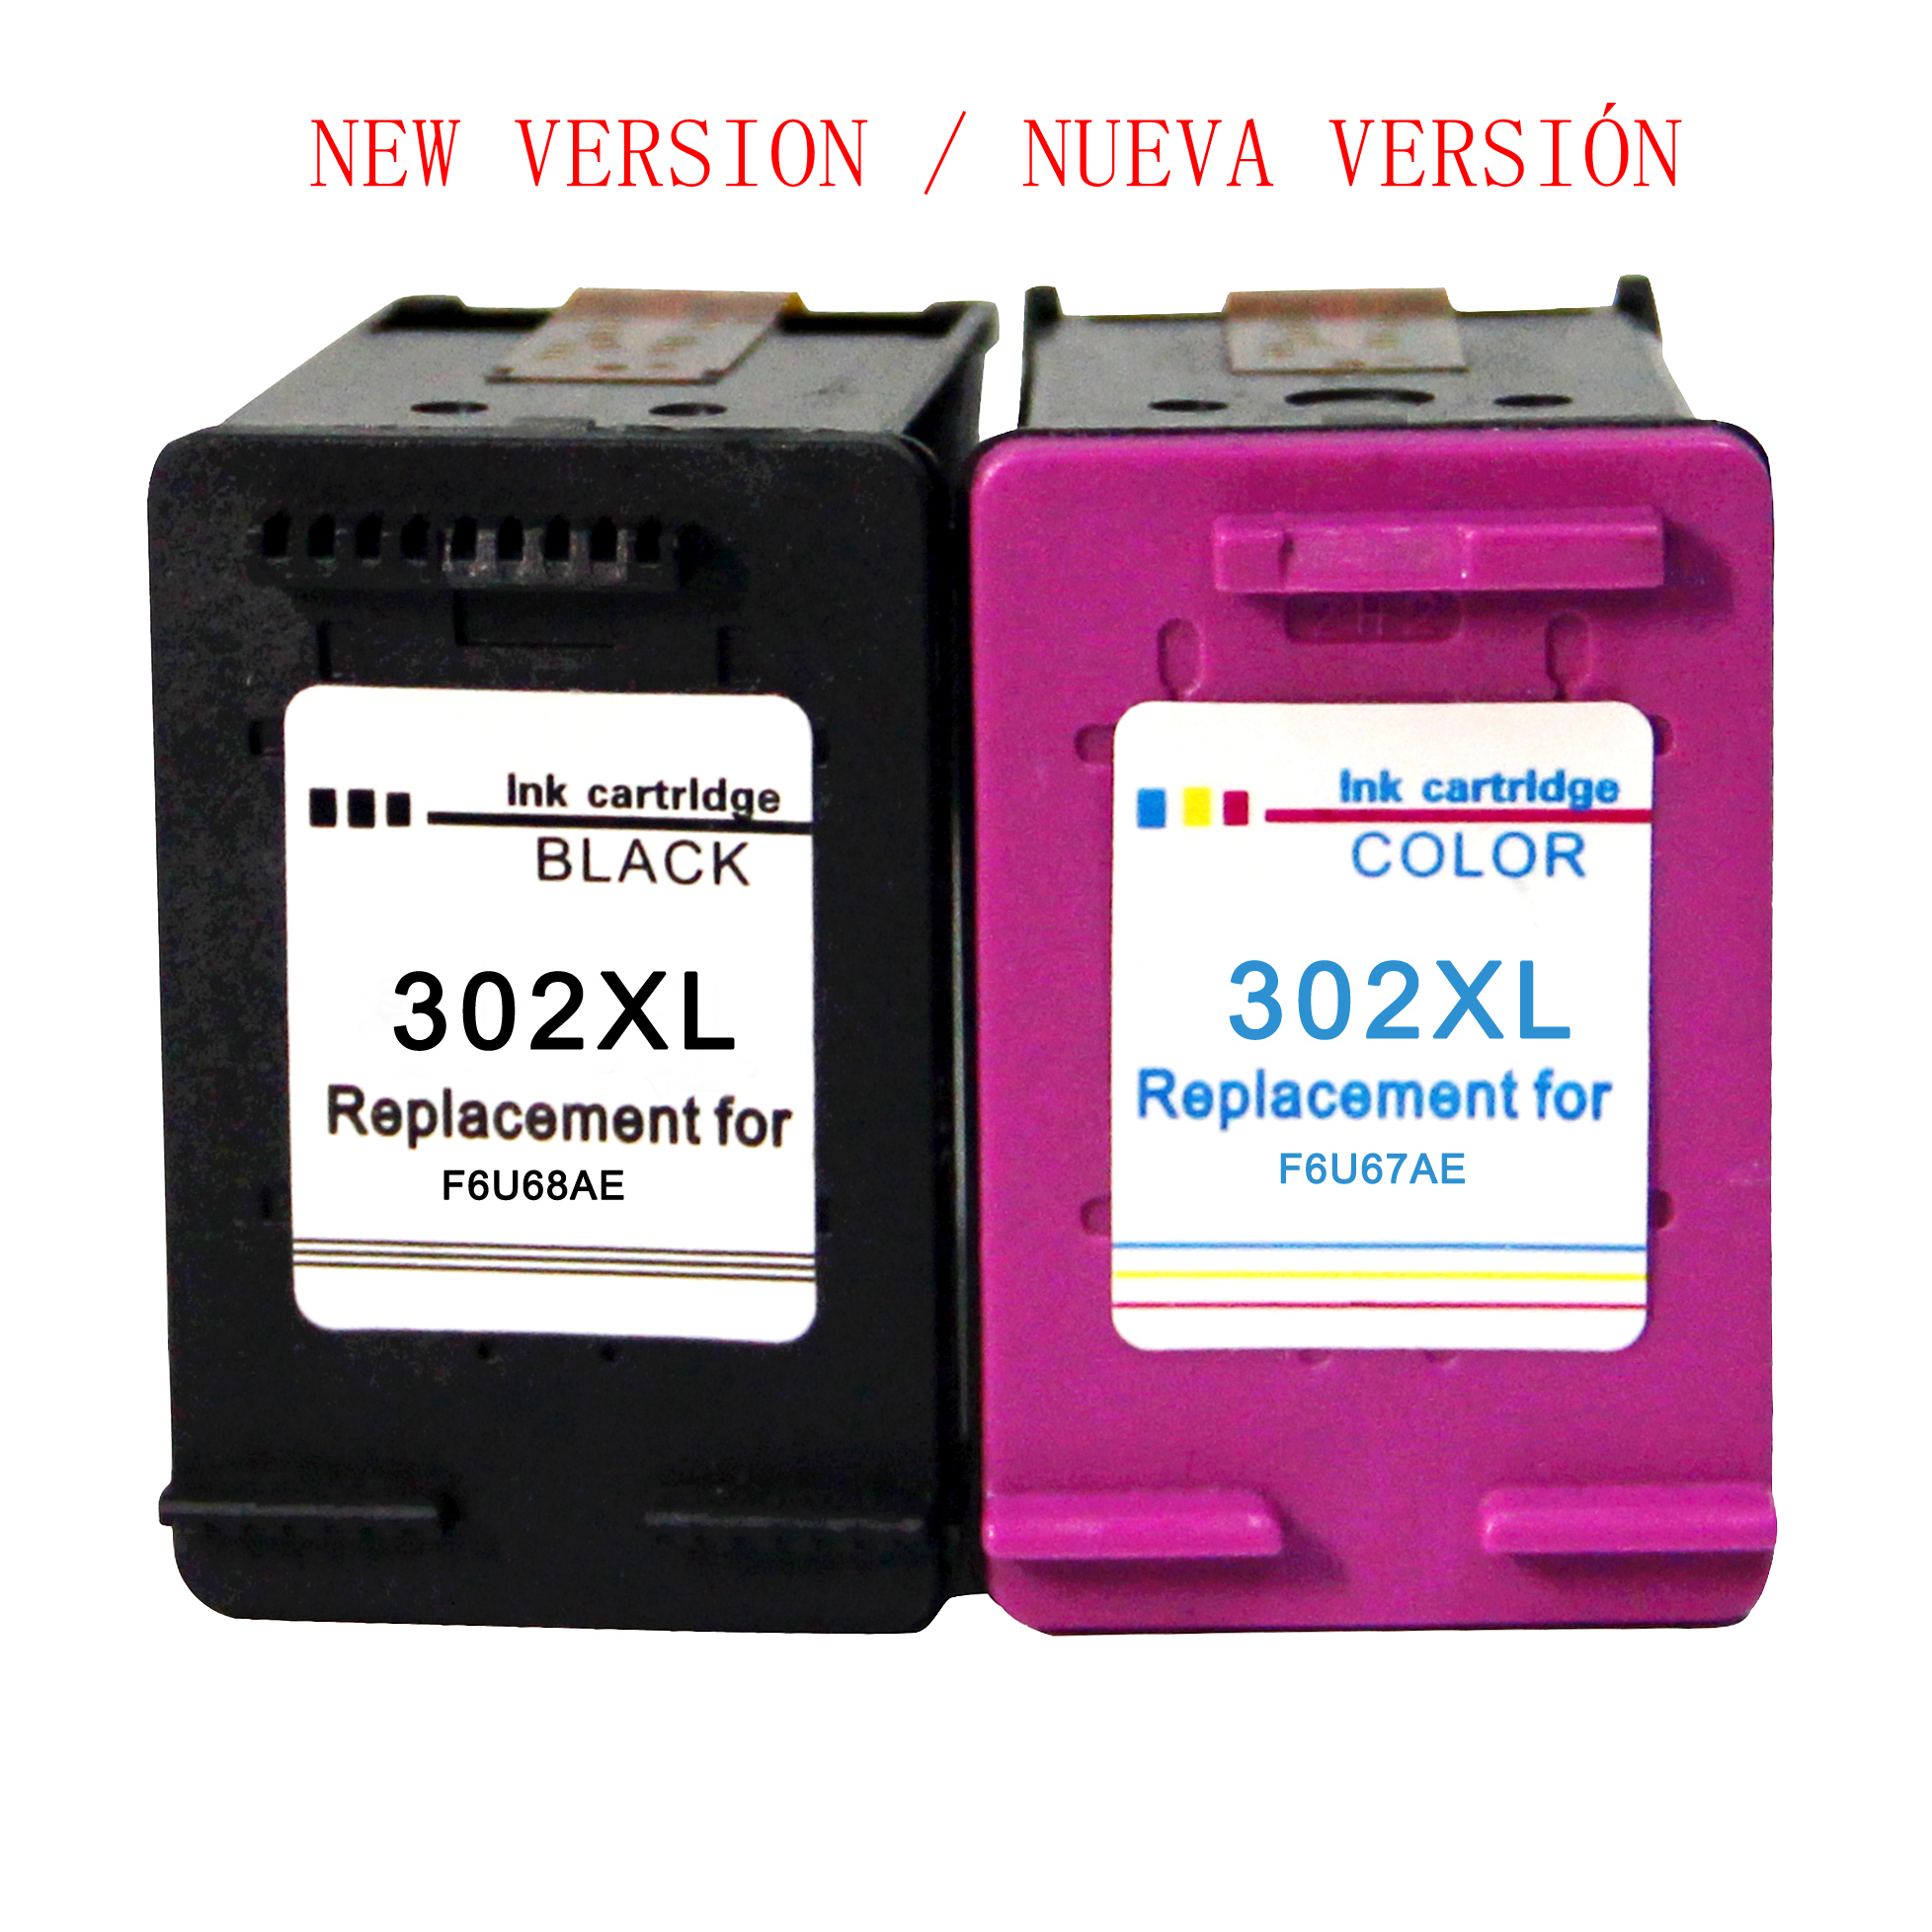 Compatibel 302XL Inkt Cartridges Voor Hp 302 Voor Hp Officejet 5220 5222 5230 5232 3831 3833 Envy 4520 4524 Deskjet 3639